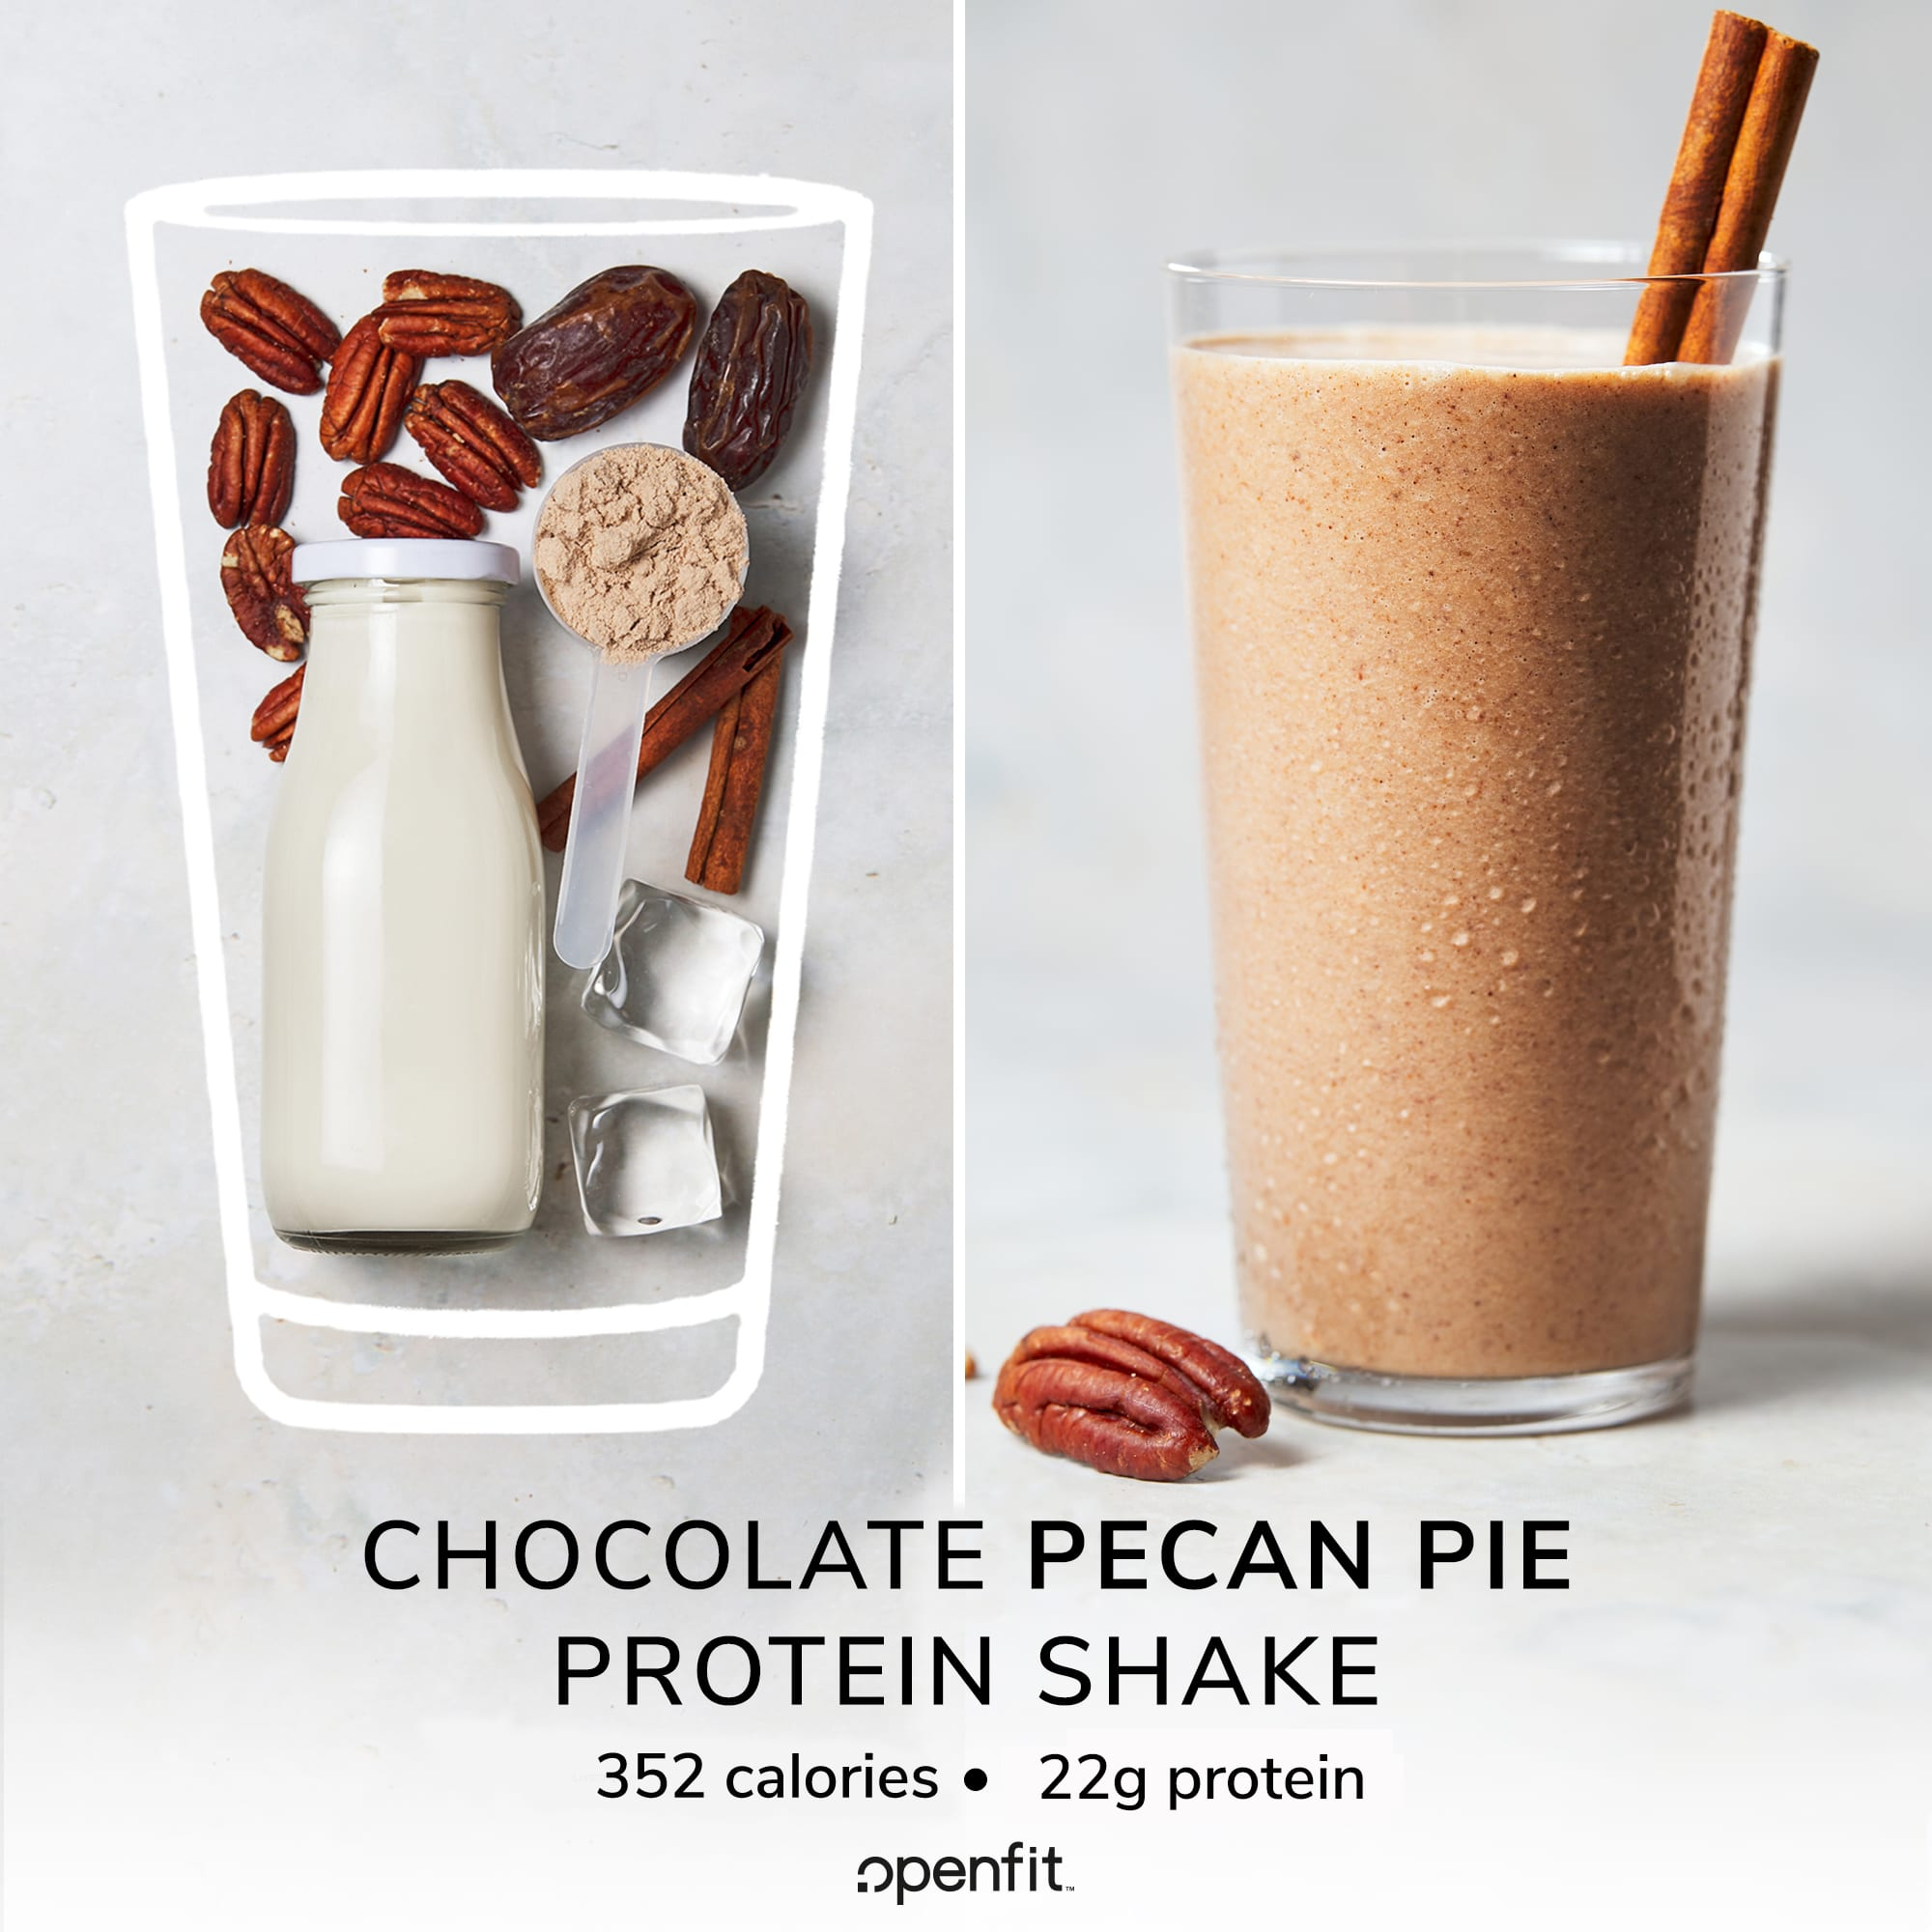 chocolate pecan pie shake - before and after image